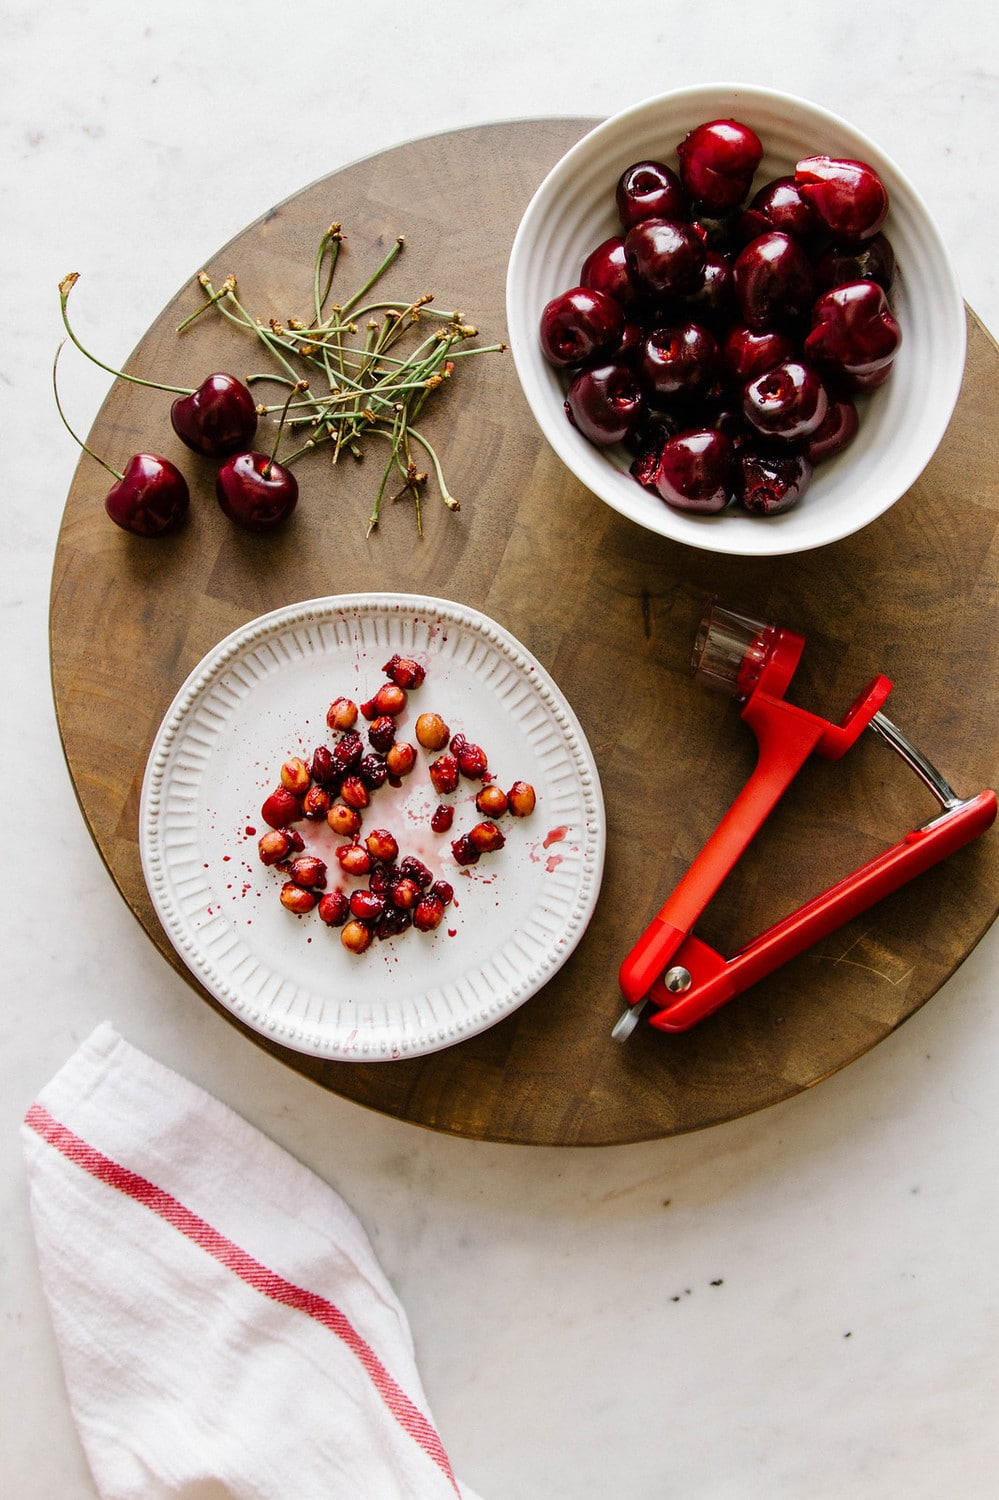 cherries being pitted on a circular wooden cutting board